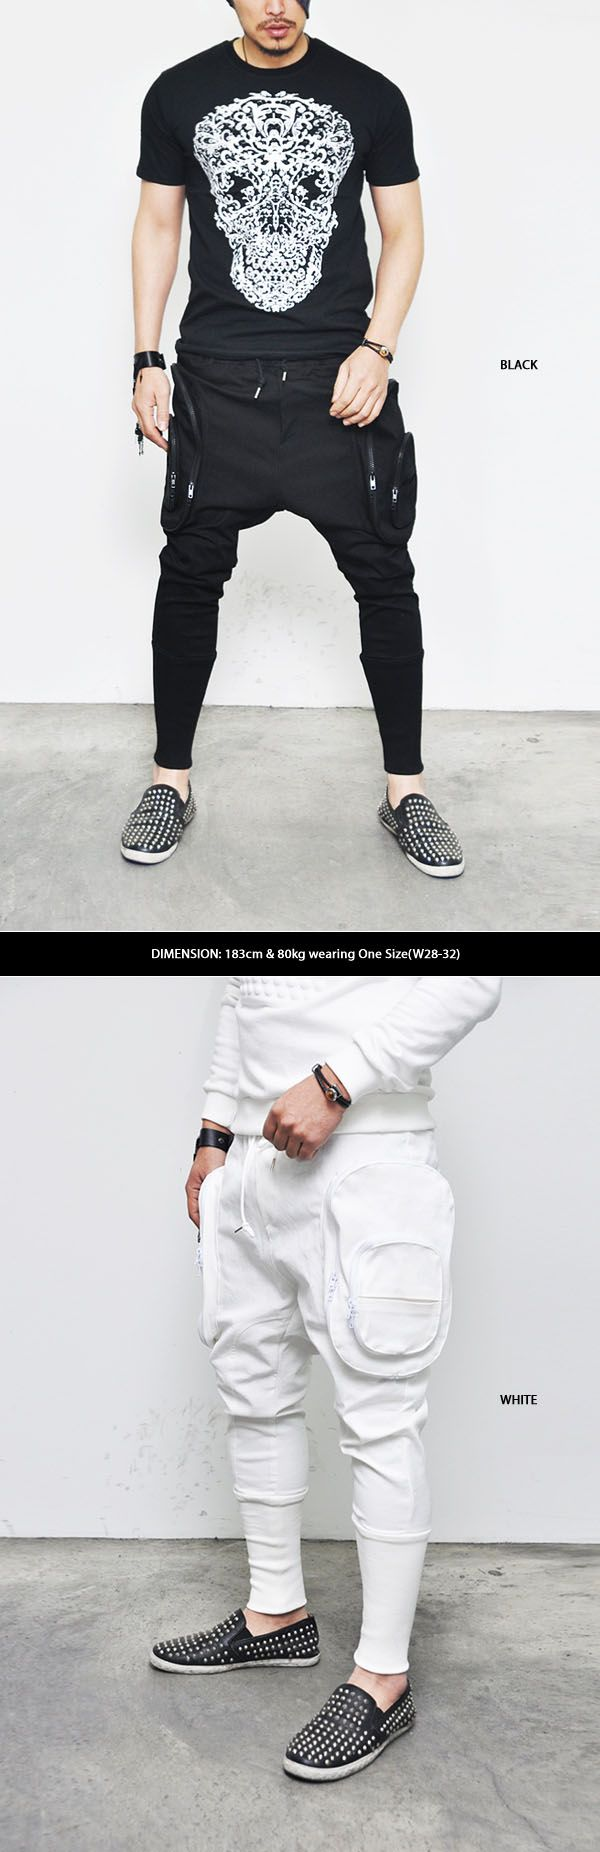 Bottoms :: Sweatpants :: Re) Oversized Double Zip Cargo Baggy-Sweatpants 102 - Mens Fashion Clothing For An Attractive Guy Look